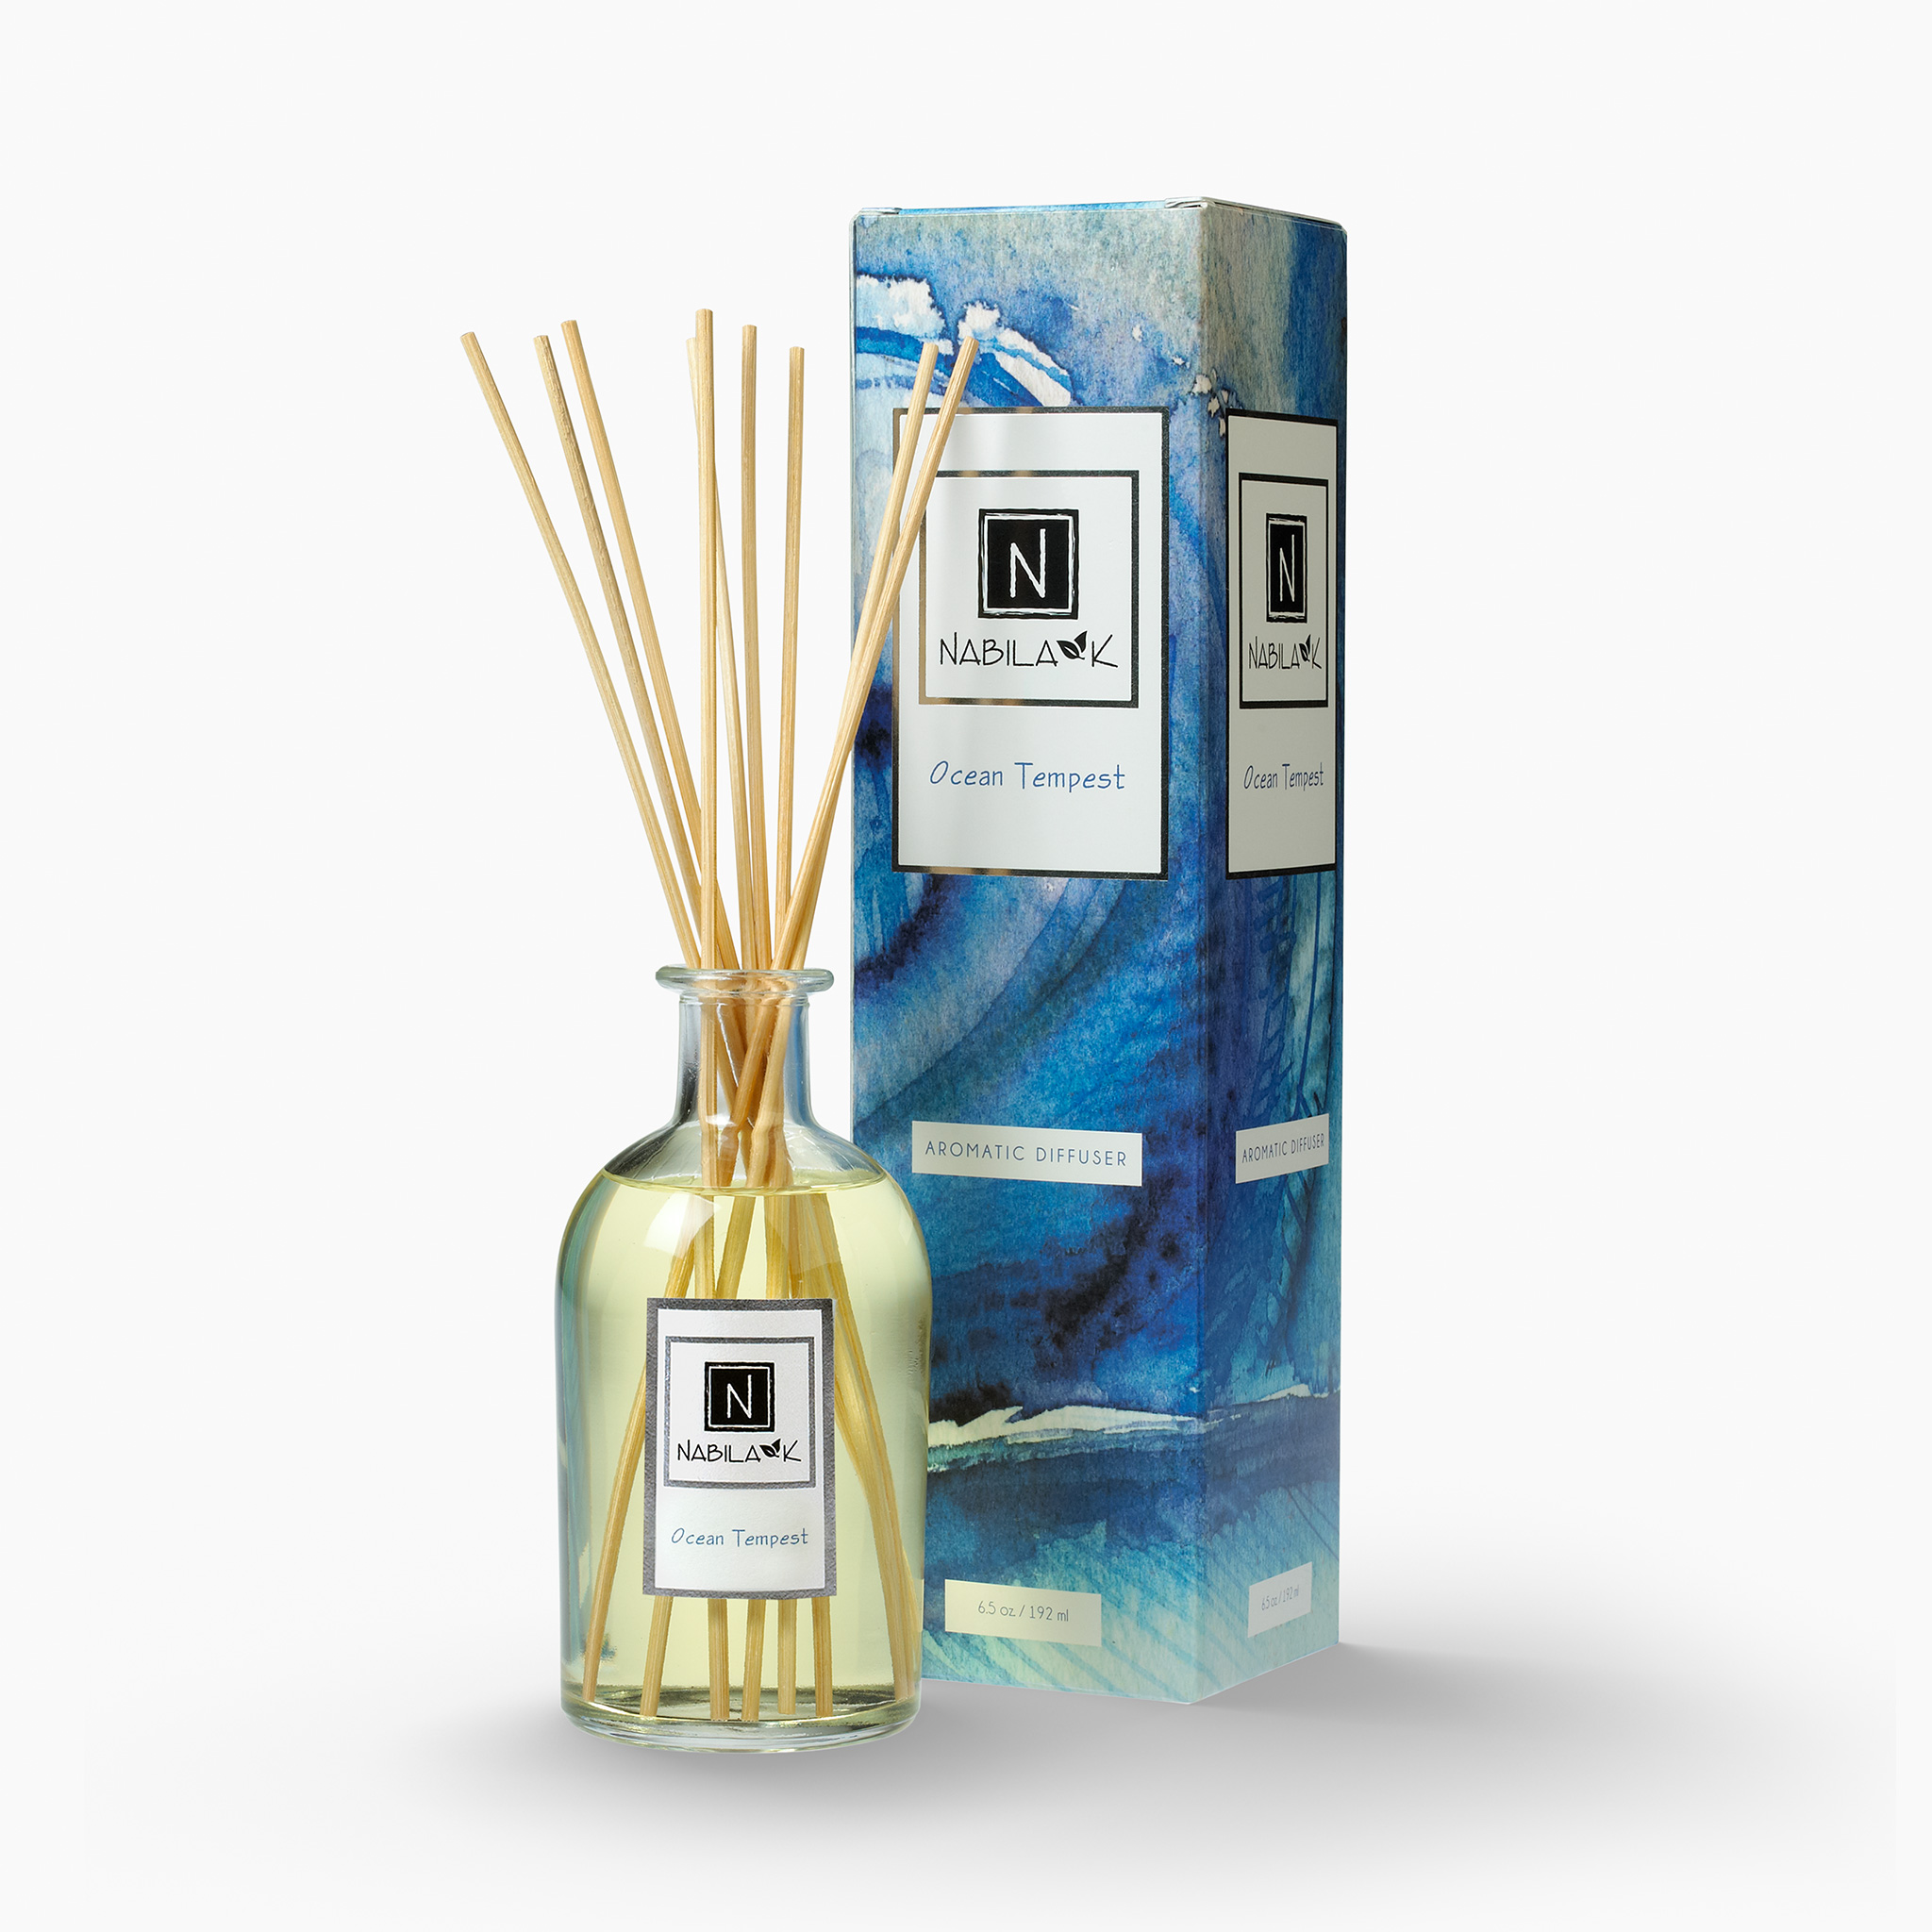 Nabila K's Ocean Tempest with reeds inside the bottle with it's packaging next to it